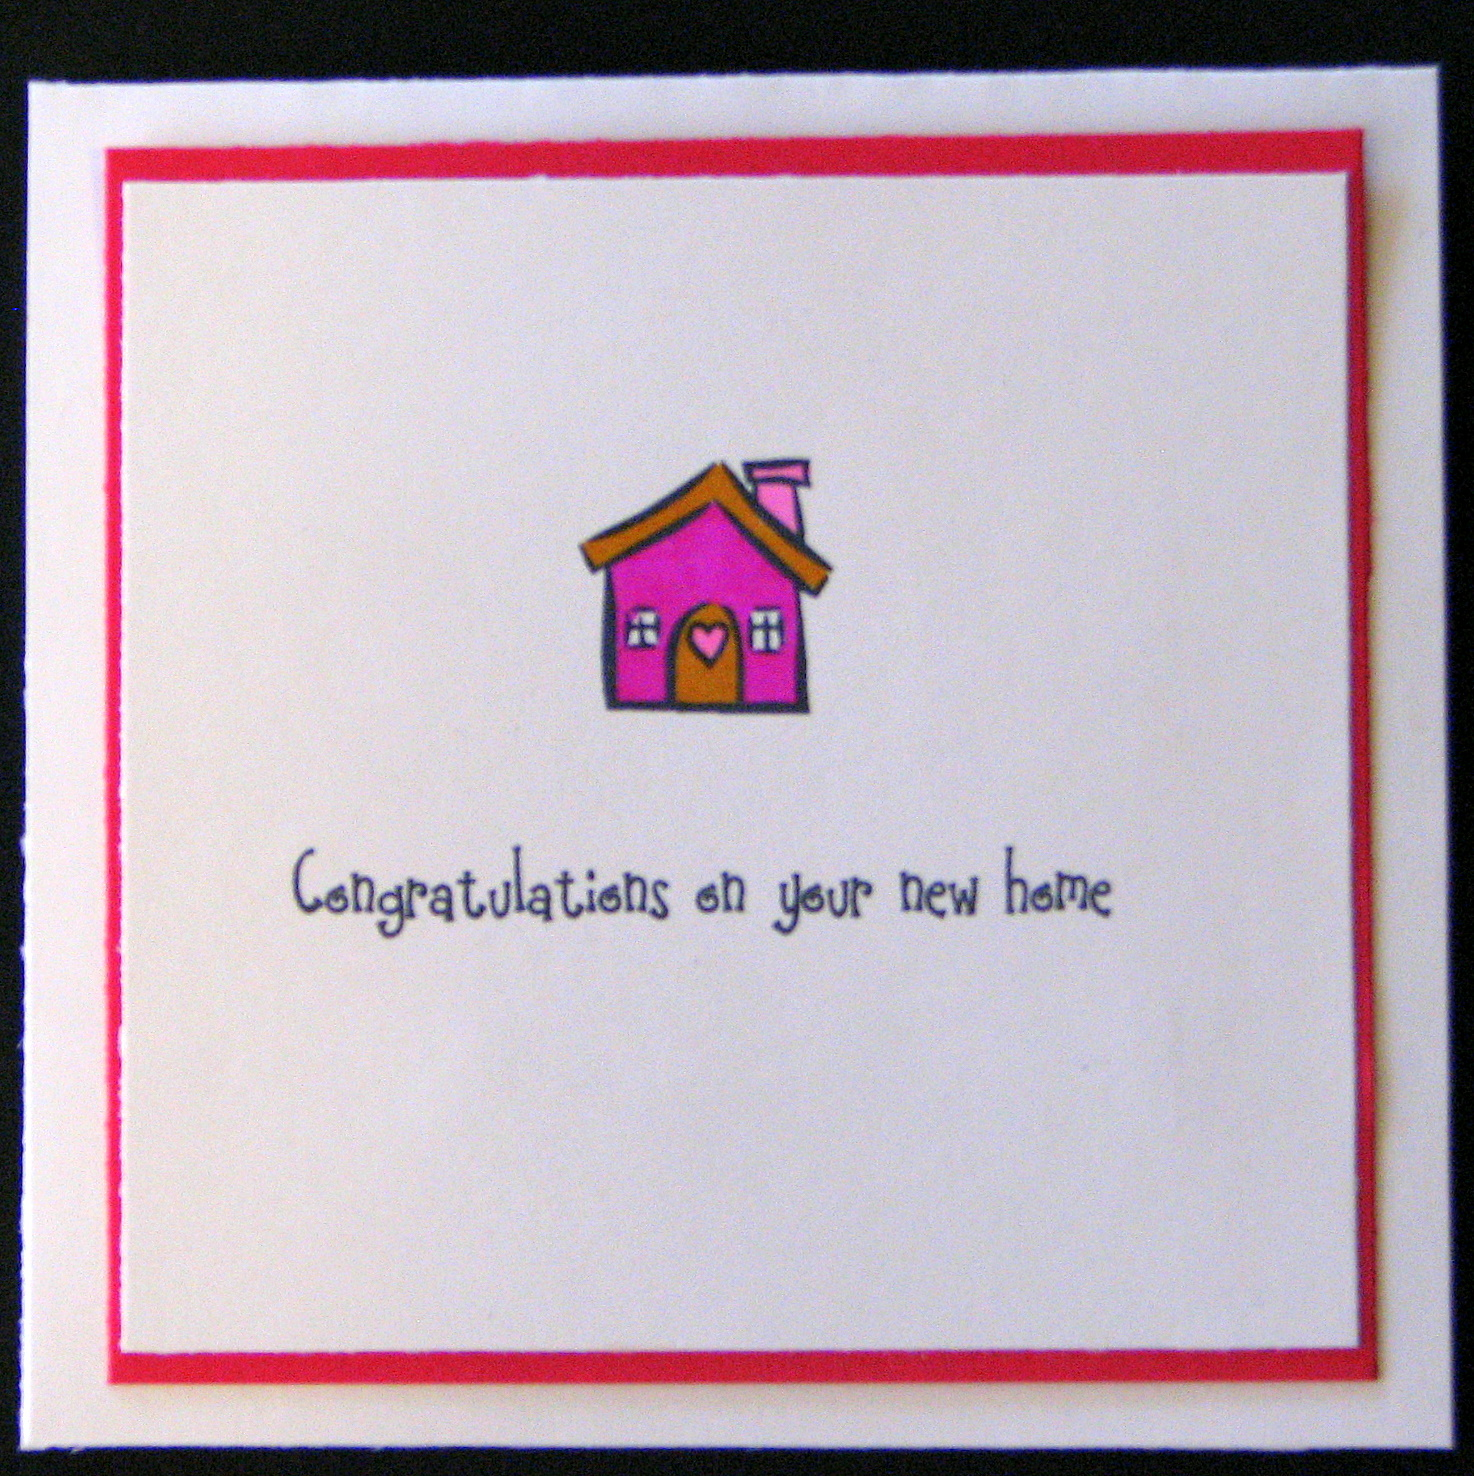 7 mockingbird lane housewarming cards What is house warming